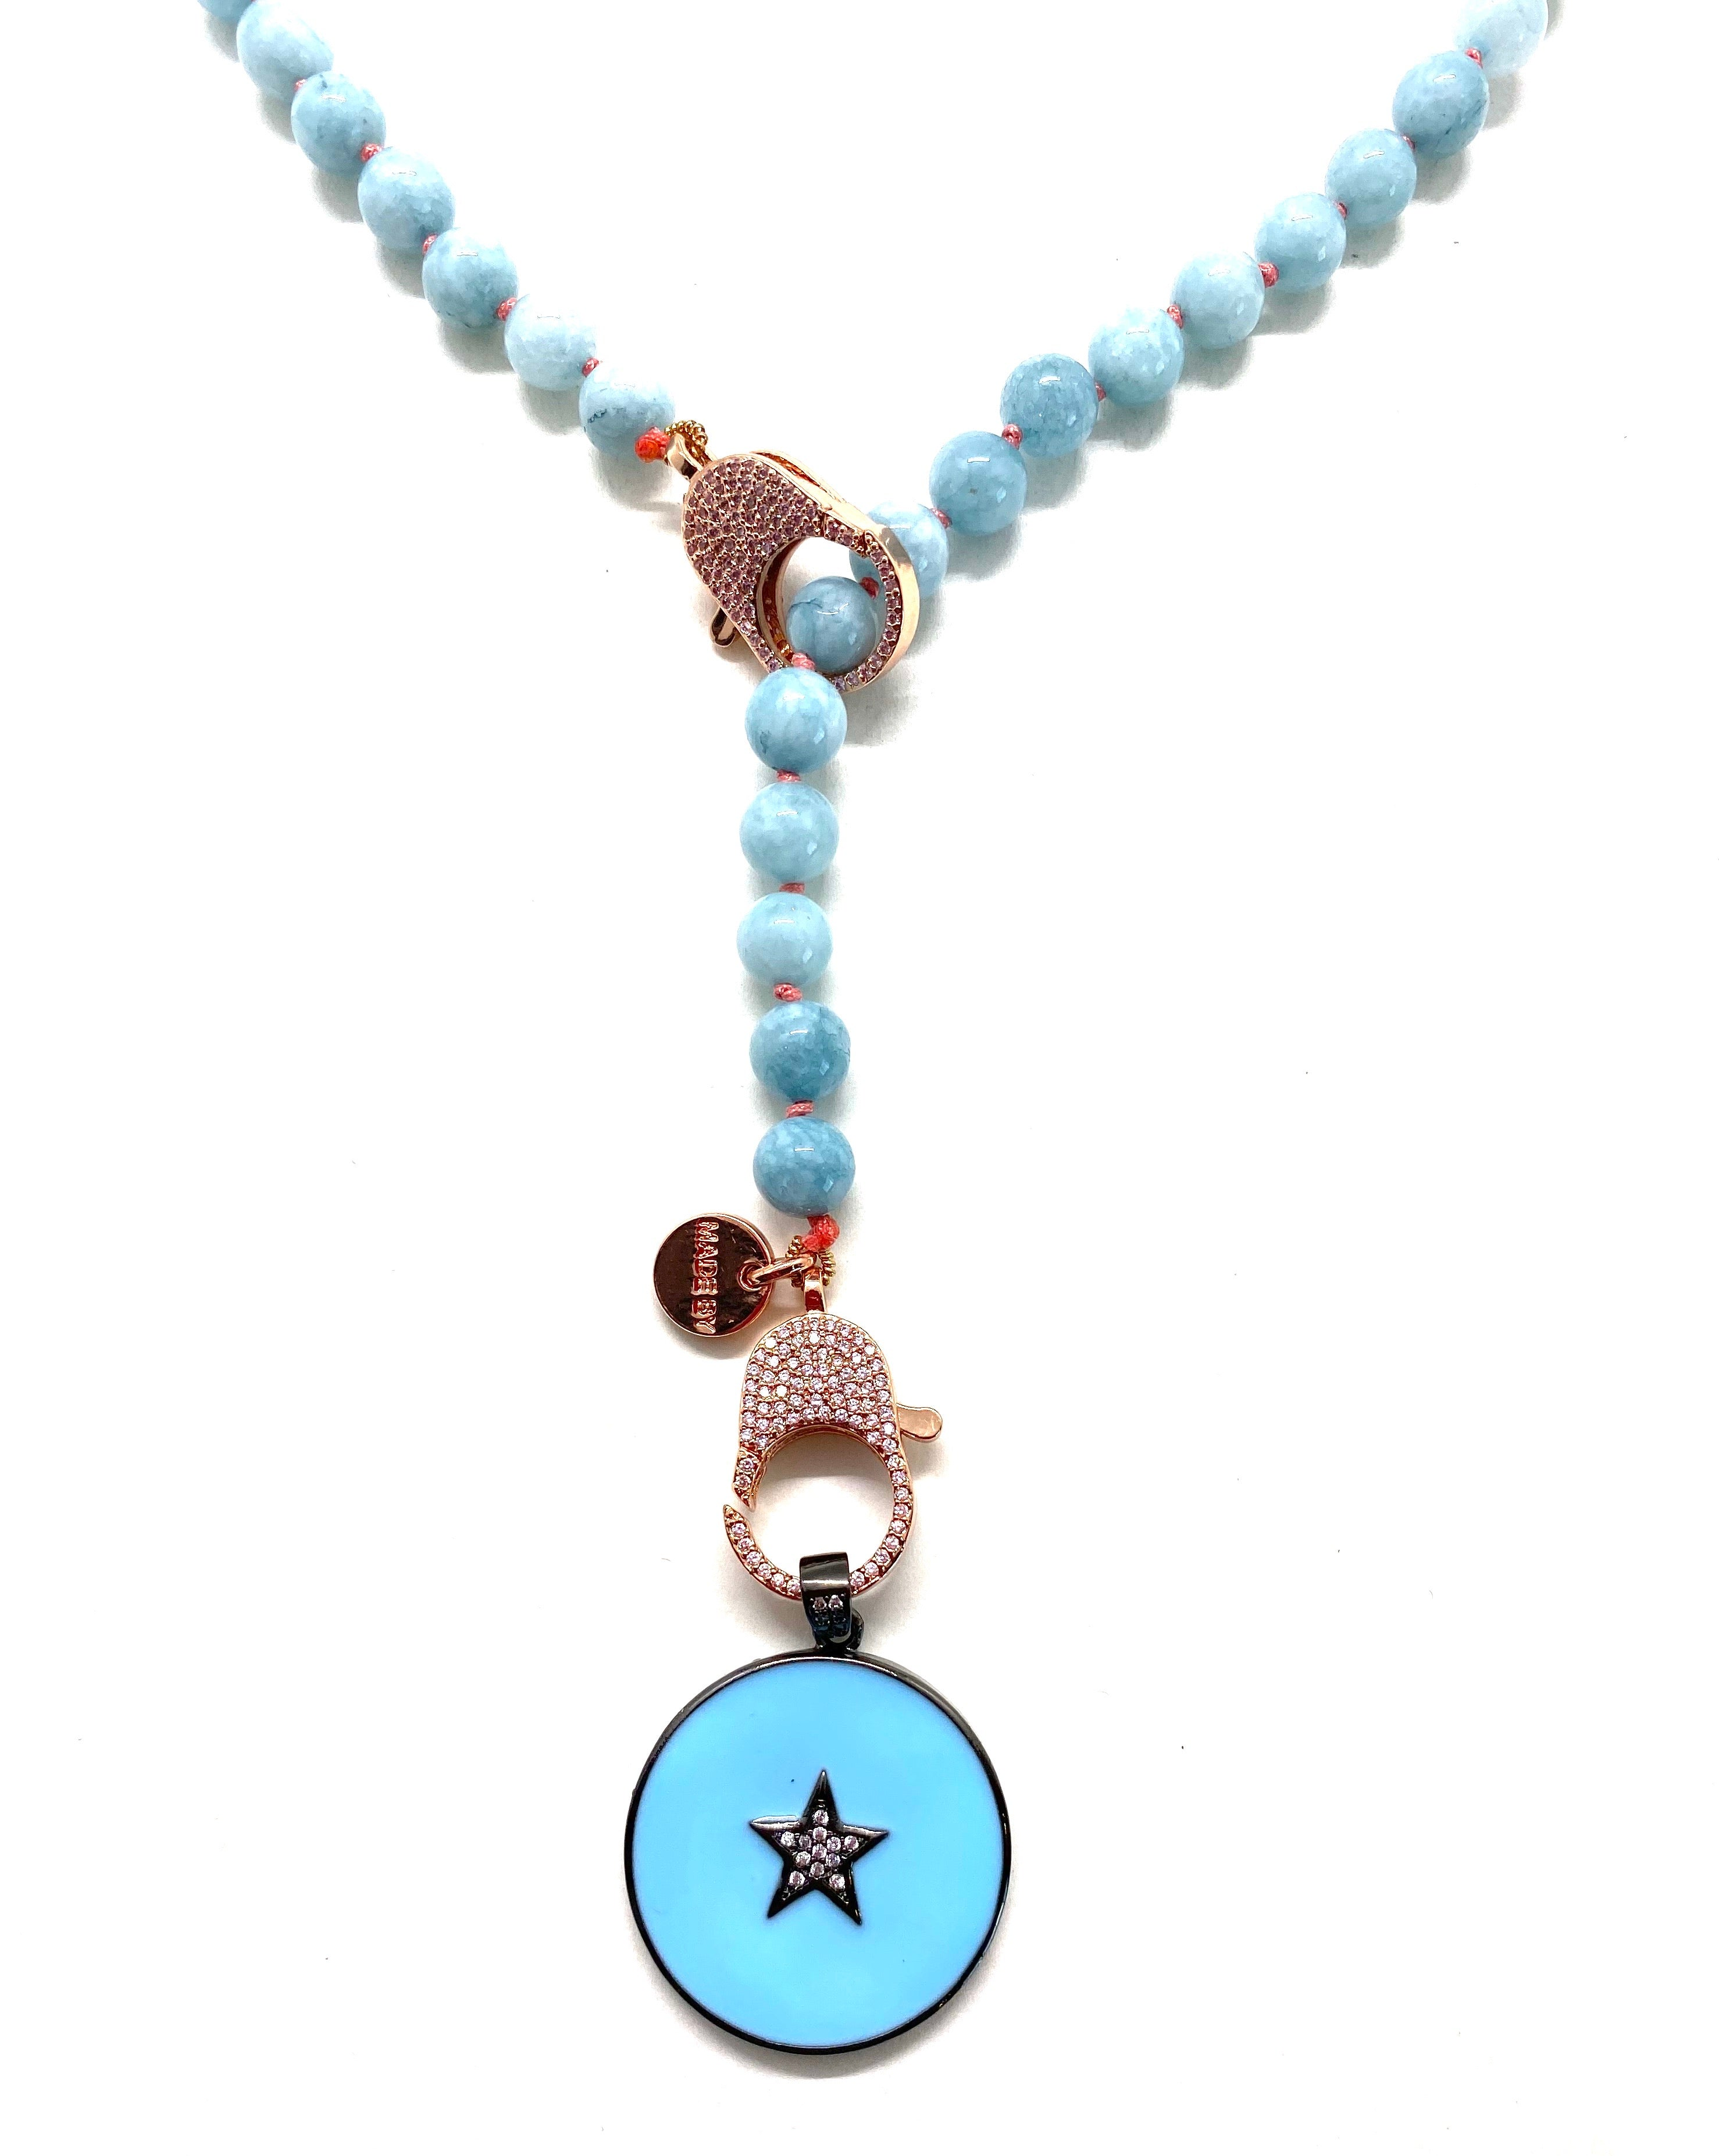 Blue jade Gaia necklace, blue sta pendant, rose gold clips